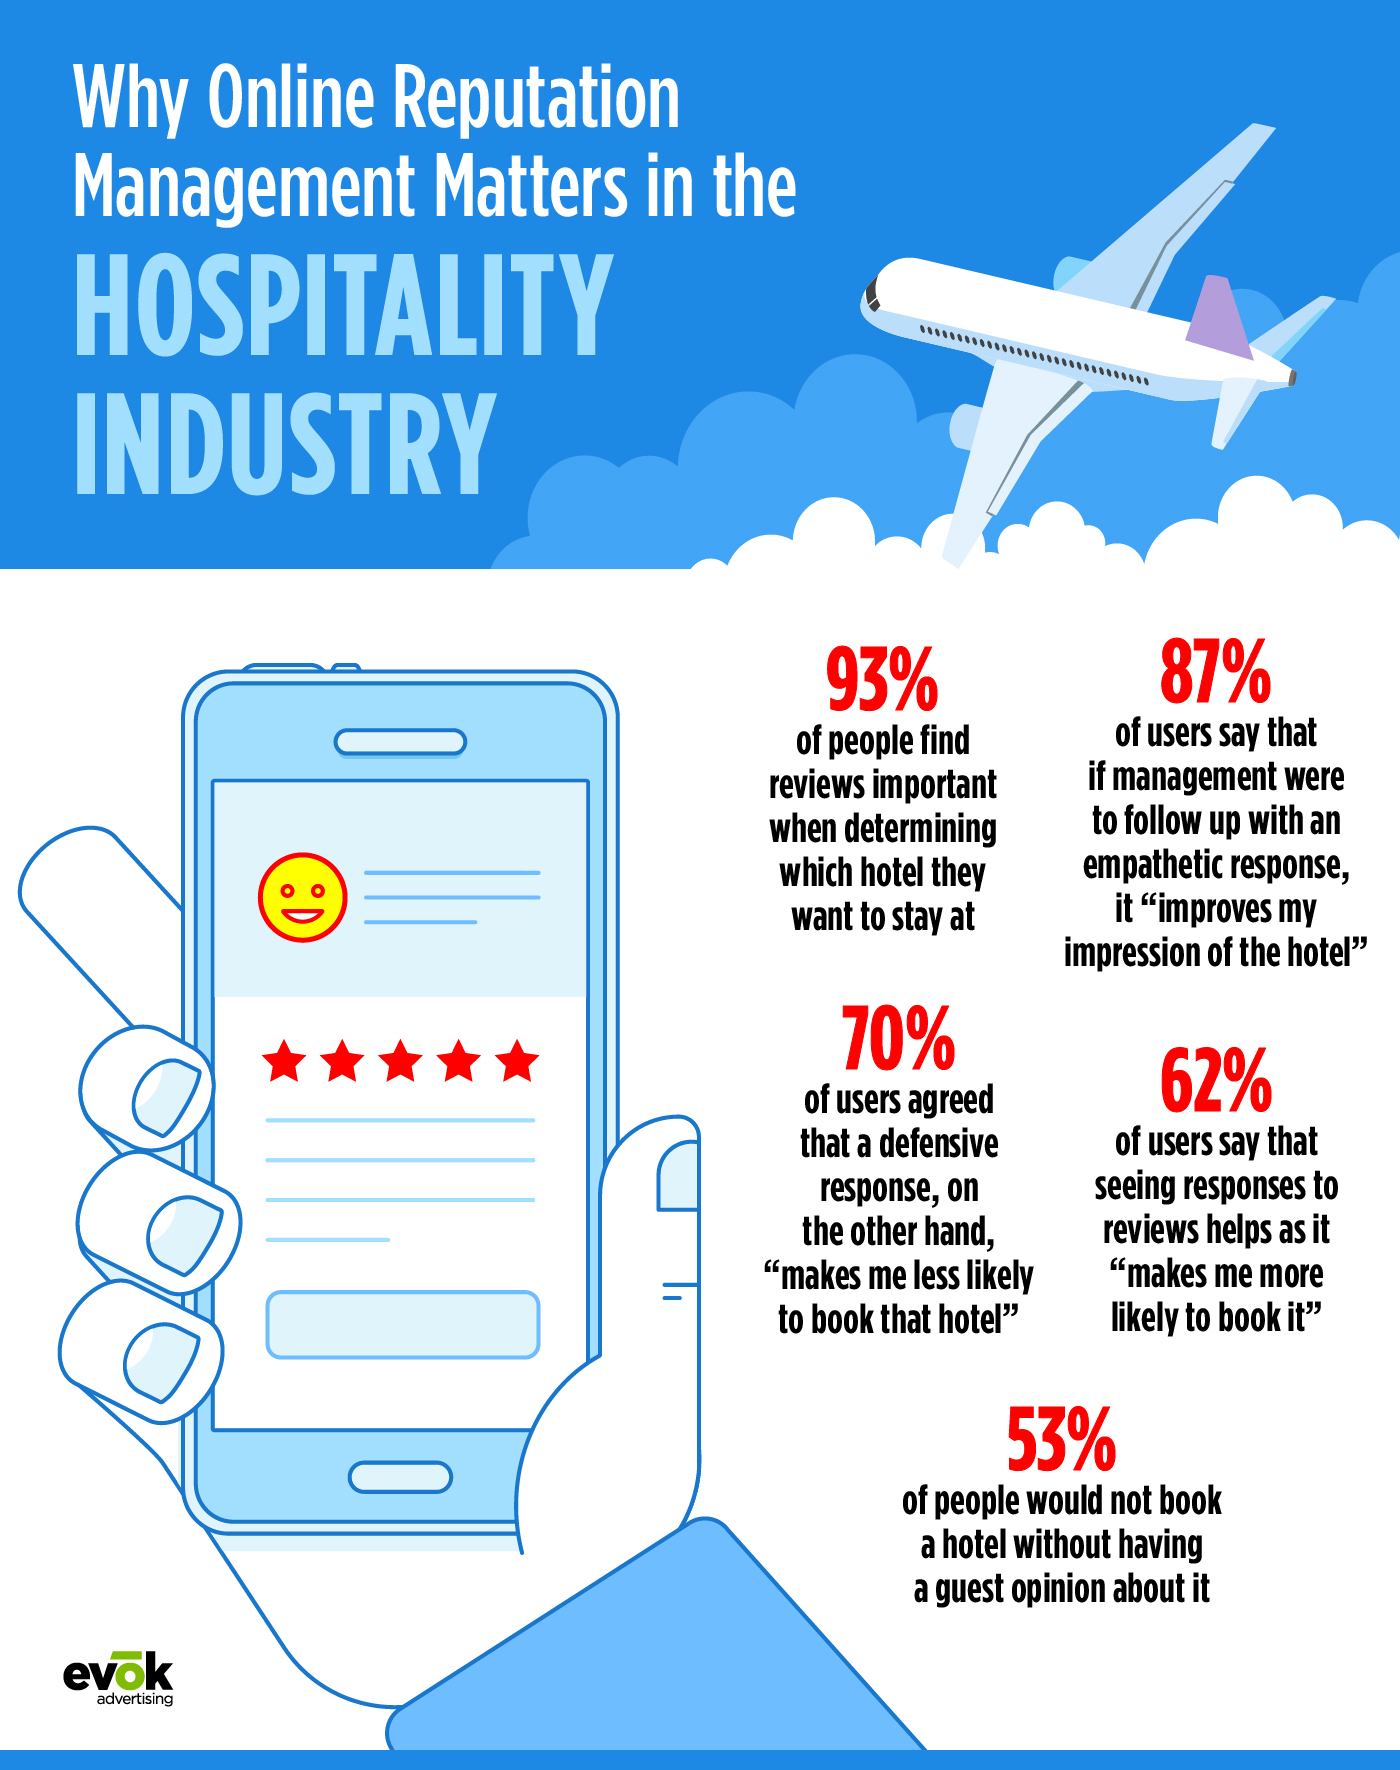 Online Reputation Management Matters in the Hospitality Industry